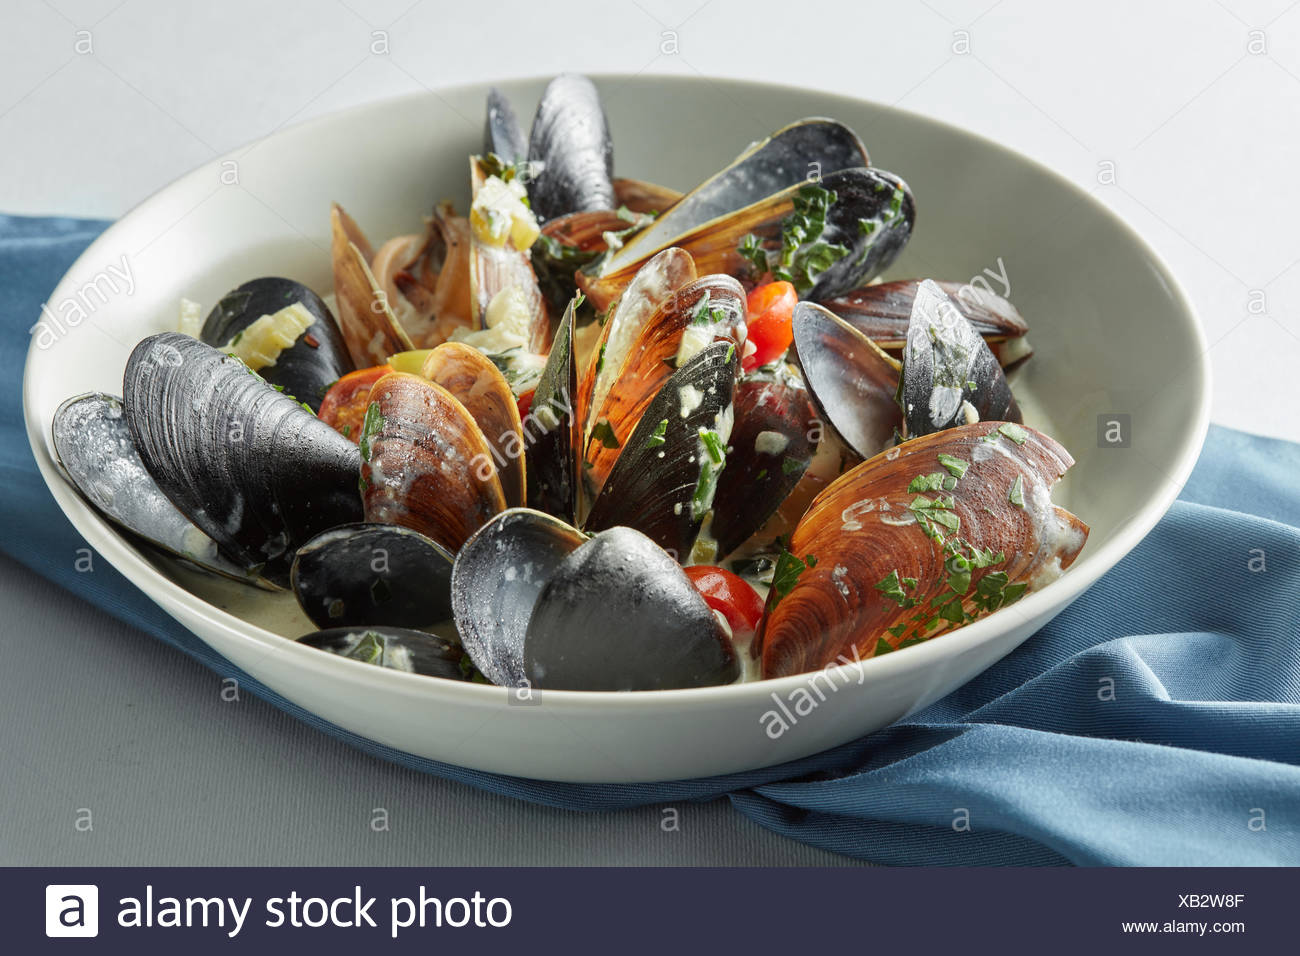 dish of mussels pics with tomato sauce - Stock Image